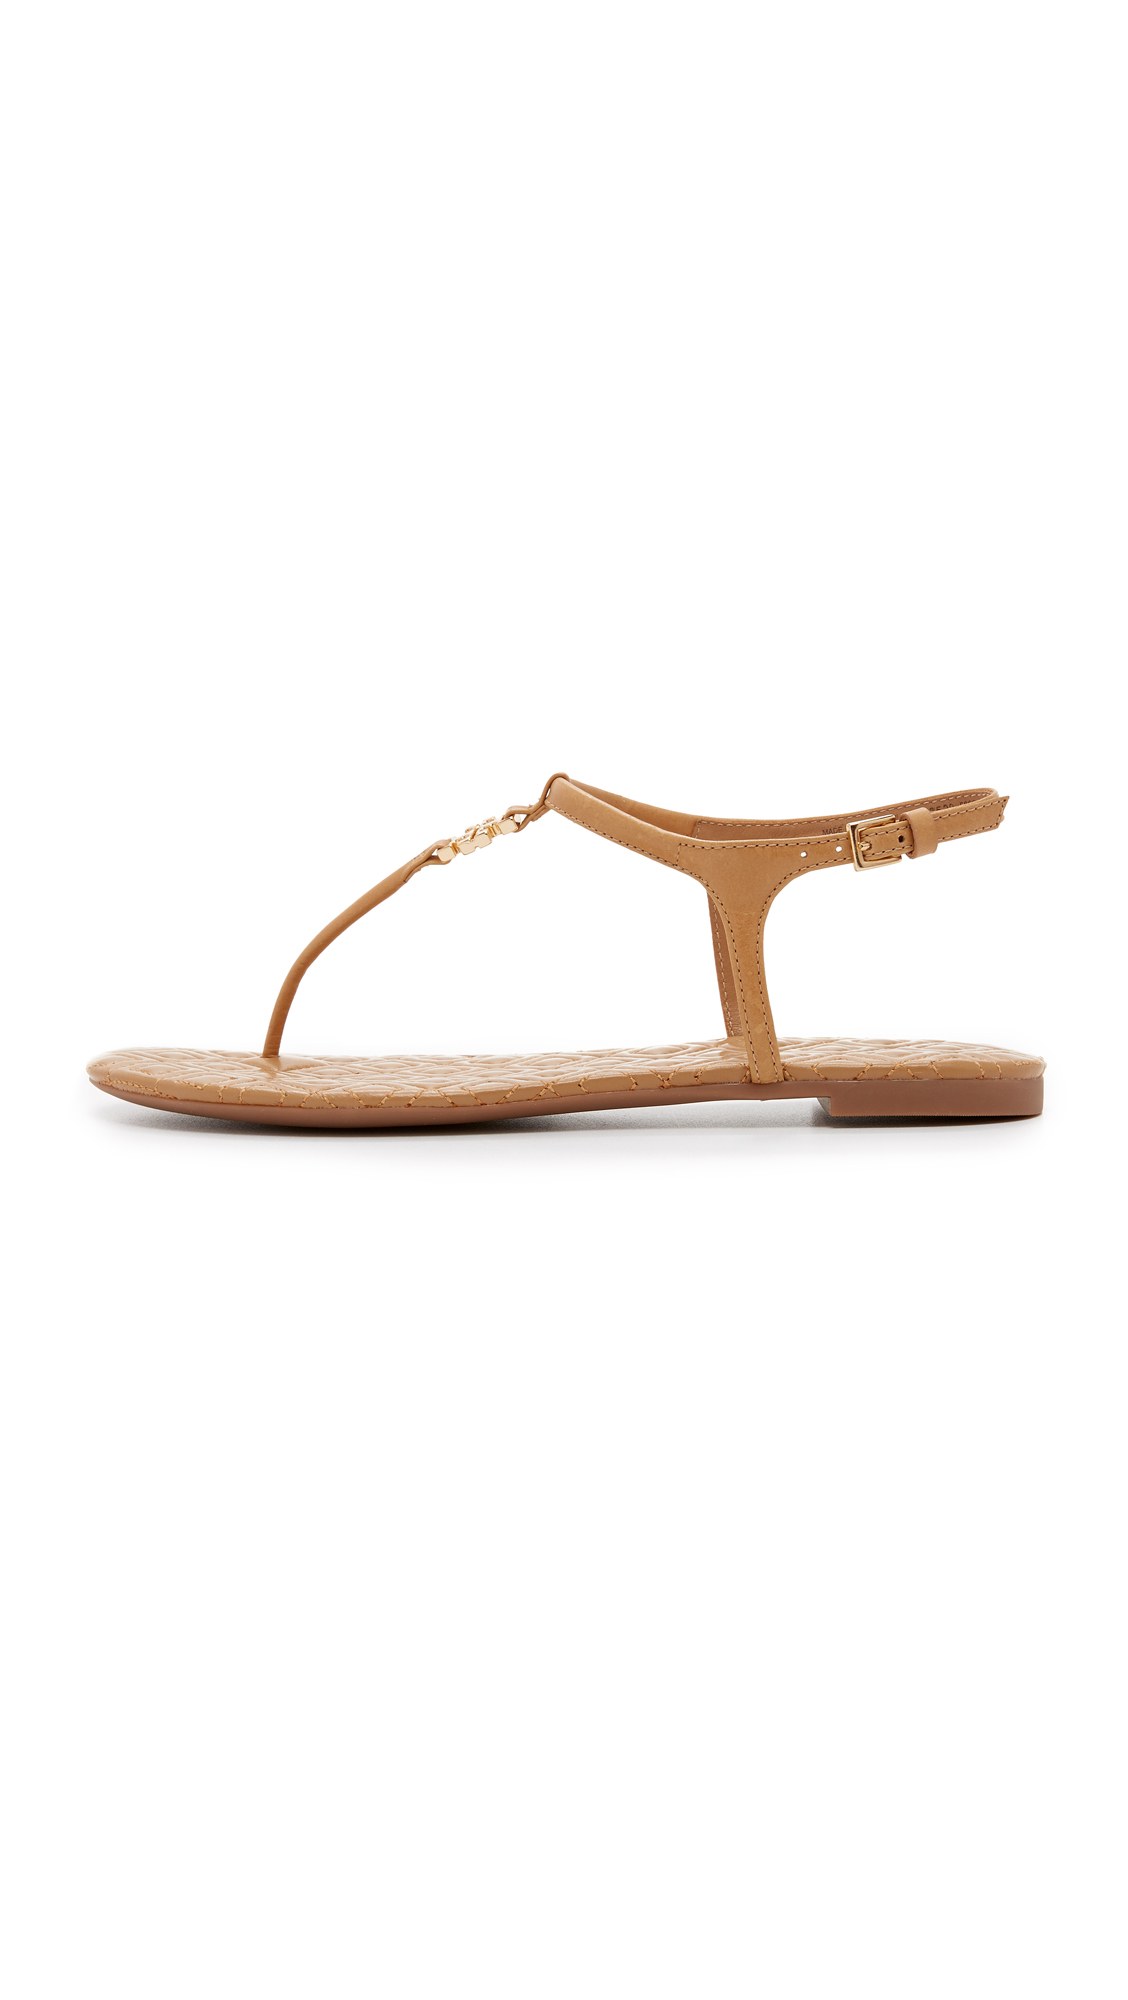 bfa542d011e3 Gallery. Previously sold at  Shopbop · Women s Tory Burch Marion Women s  Ancient Greek Sandals ...